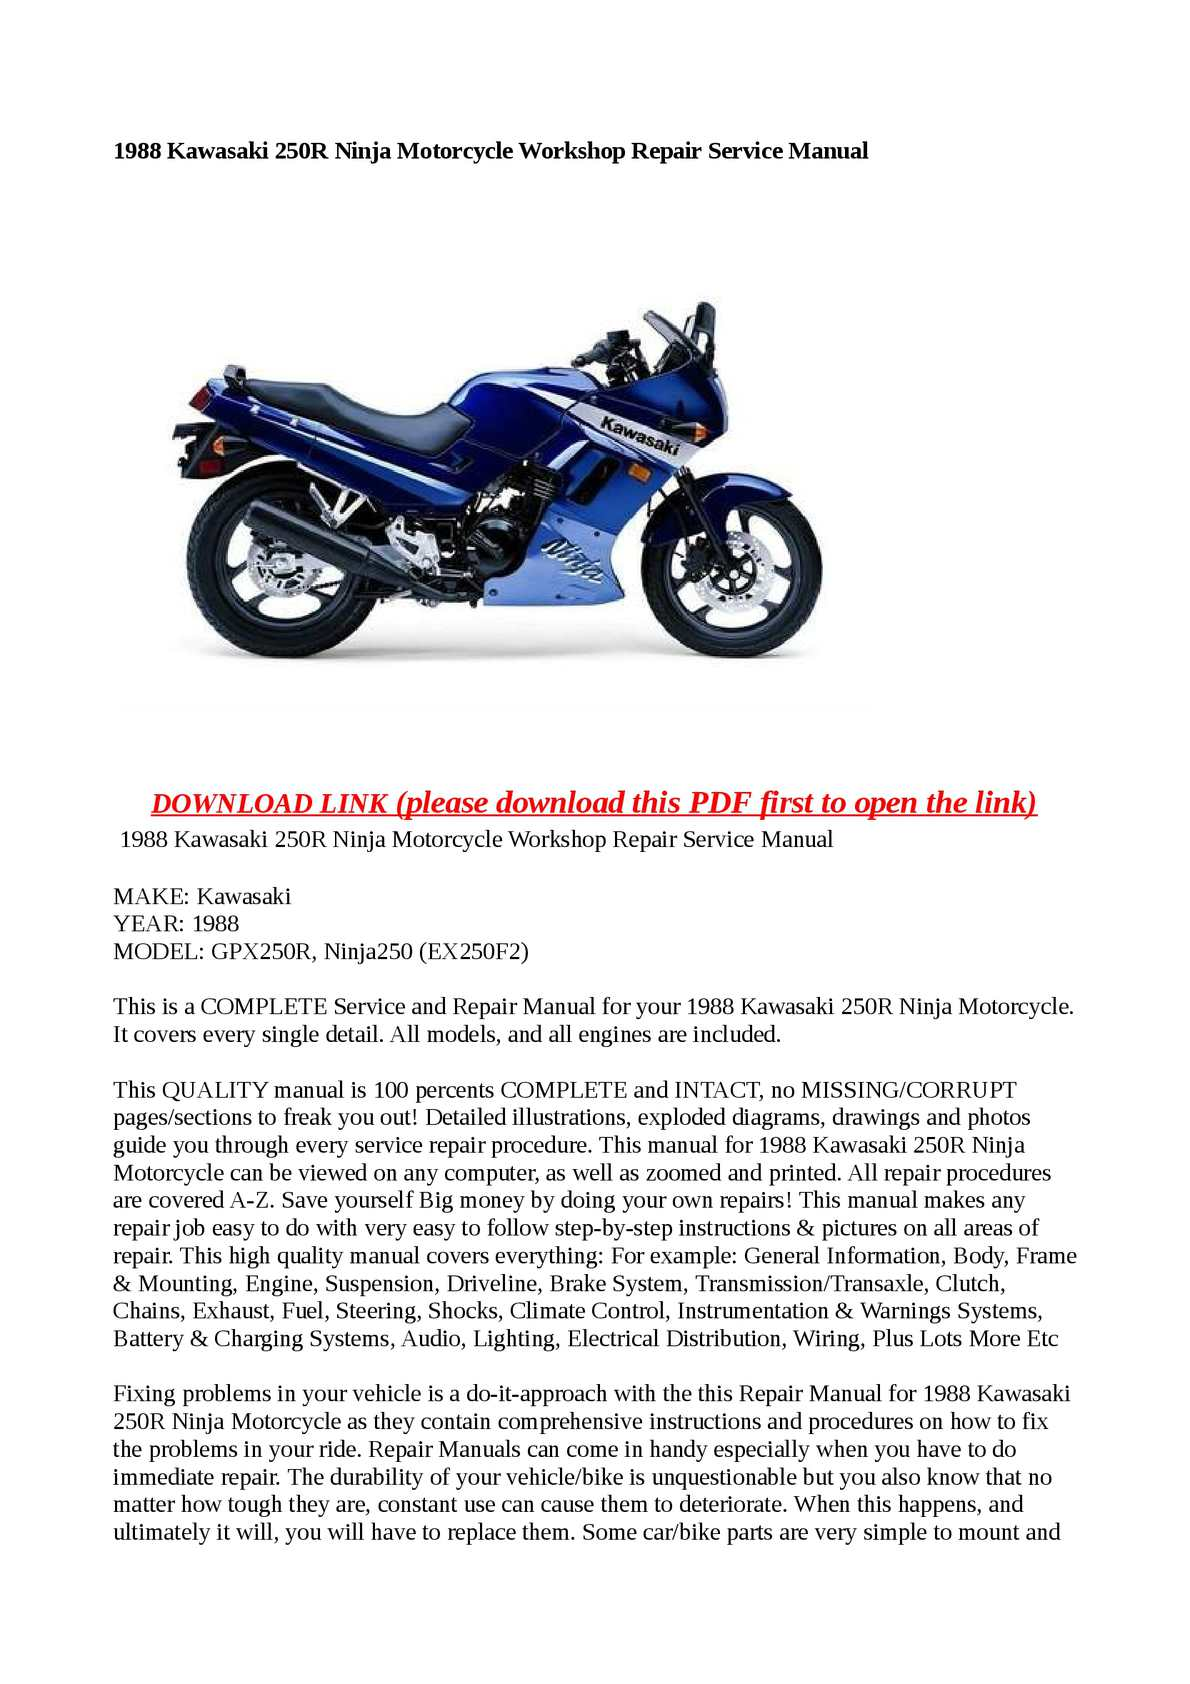 Calaméo - 1988 Kawasaki 250R Ninja Motorcycle Workshop Repair Service Manual